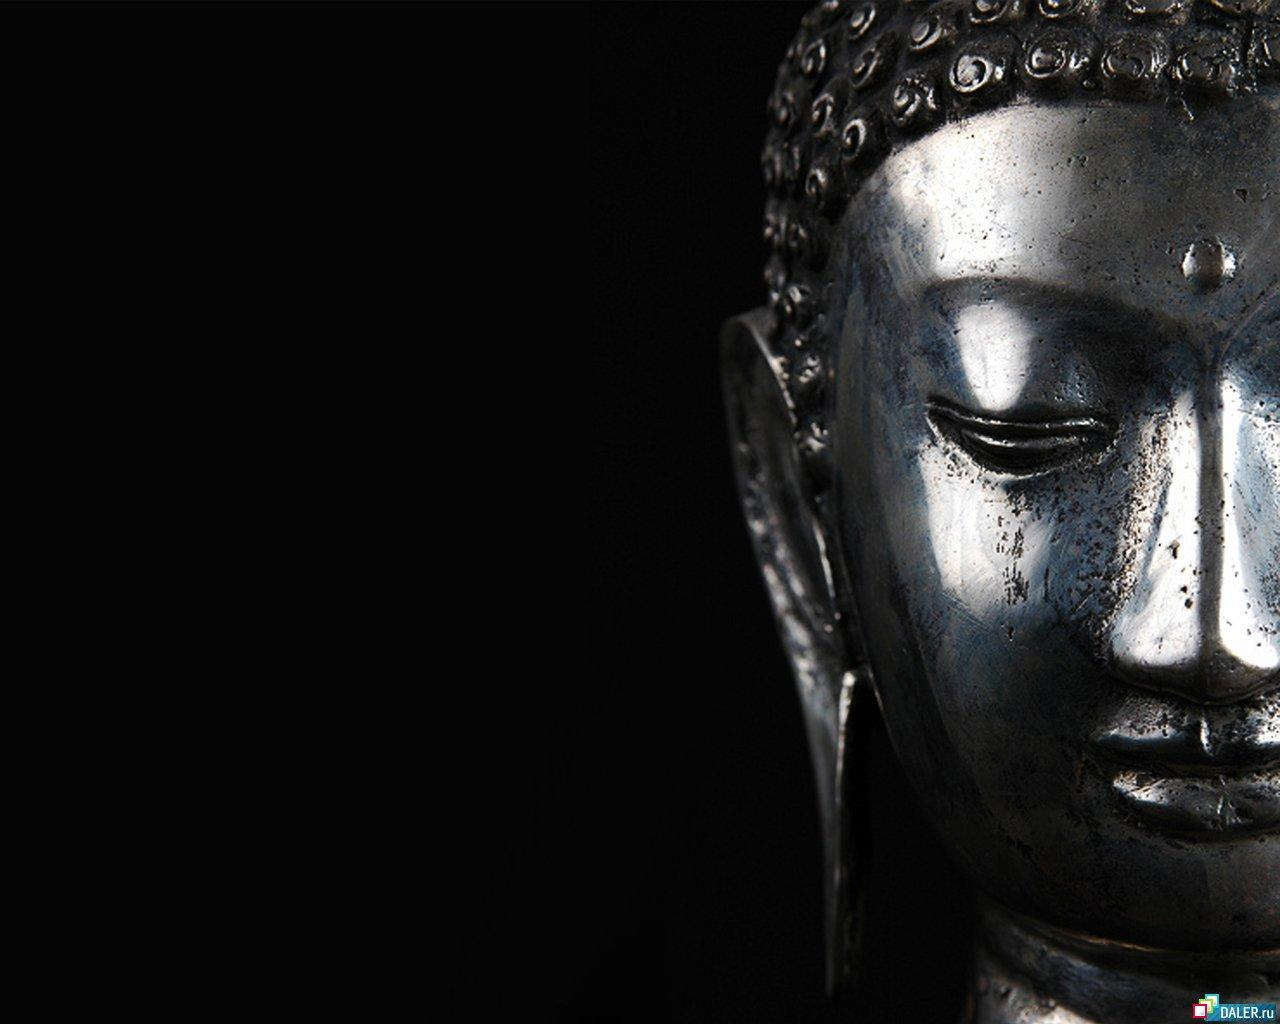 Wallpapers Update: buddhist wallpapers